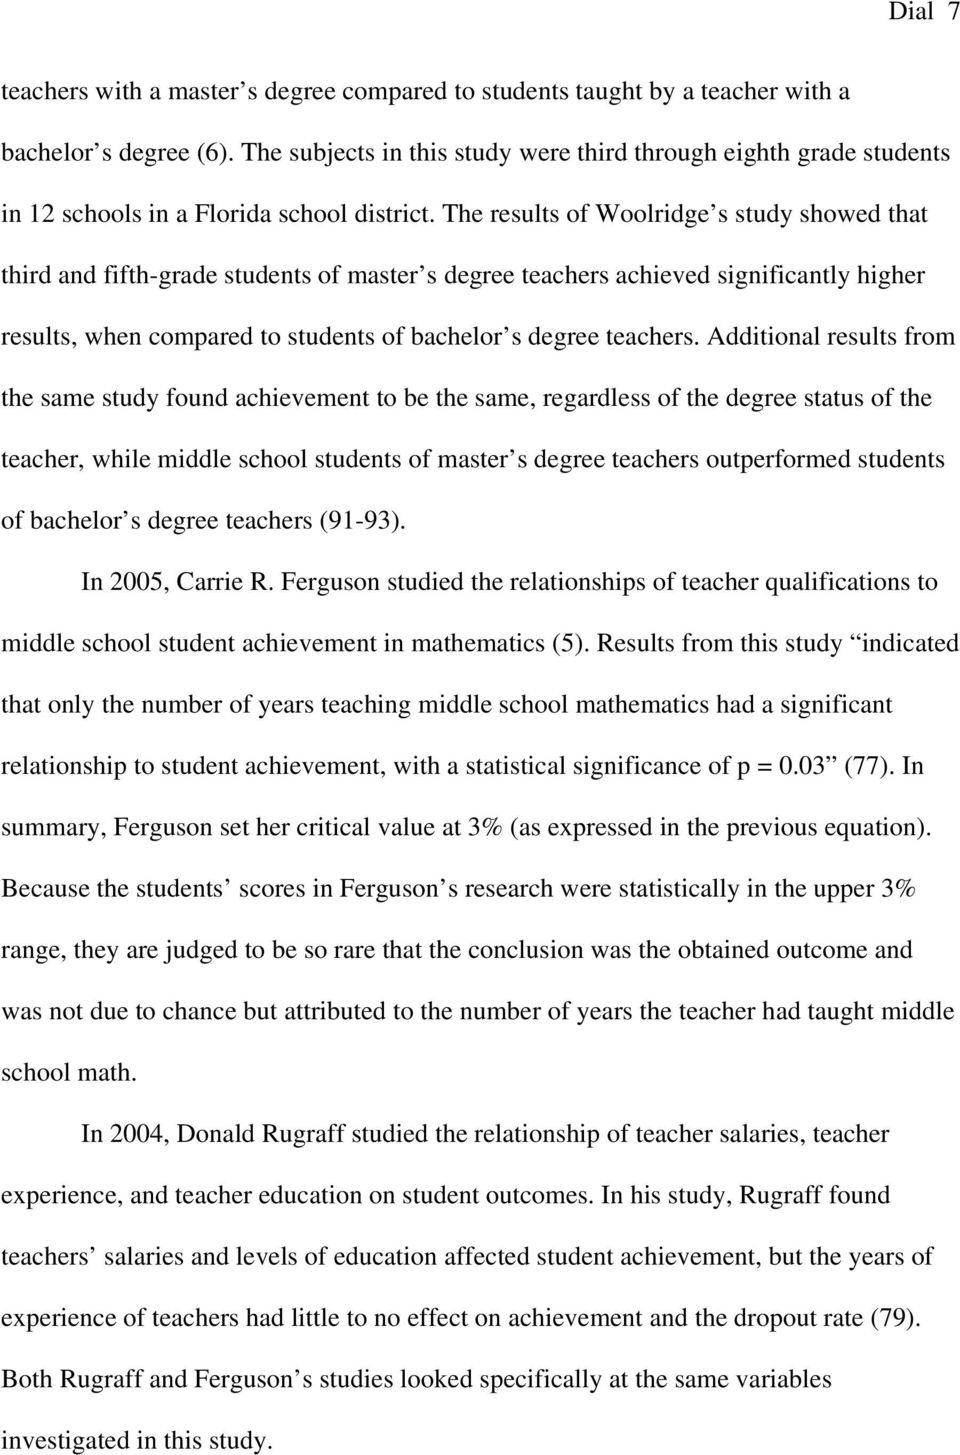 The results of Woolridge s study showed that third and fifth-grade students of master s degree teachers achieved significantly higher results, when compared to students of bachelor s degree teachers.